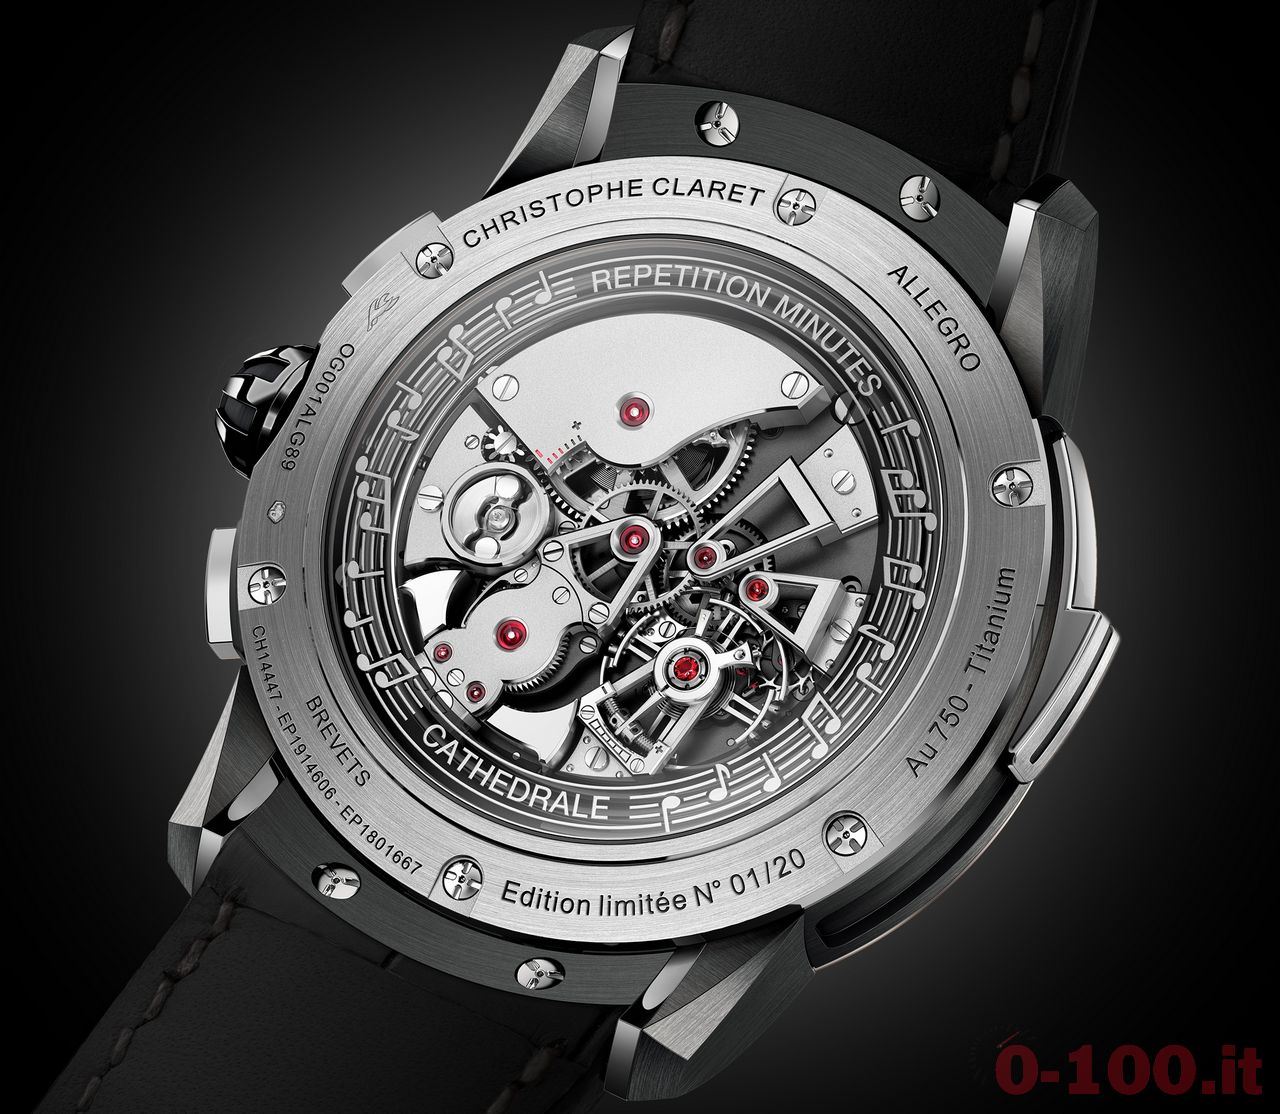 christophe-claret-allegro-limited-edition-prezzo-price_0-100_5